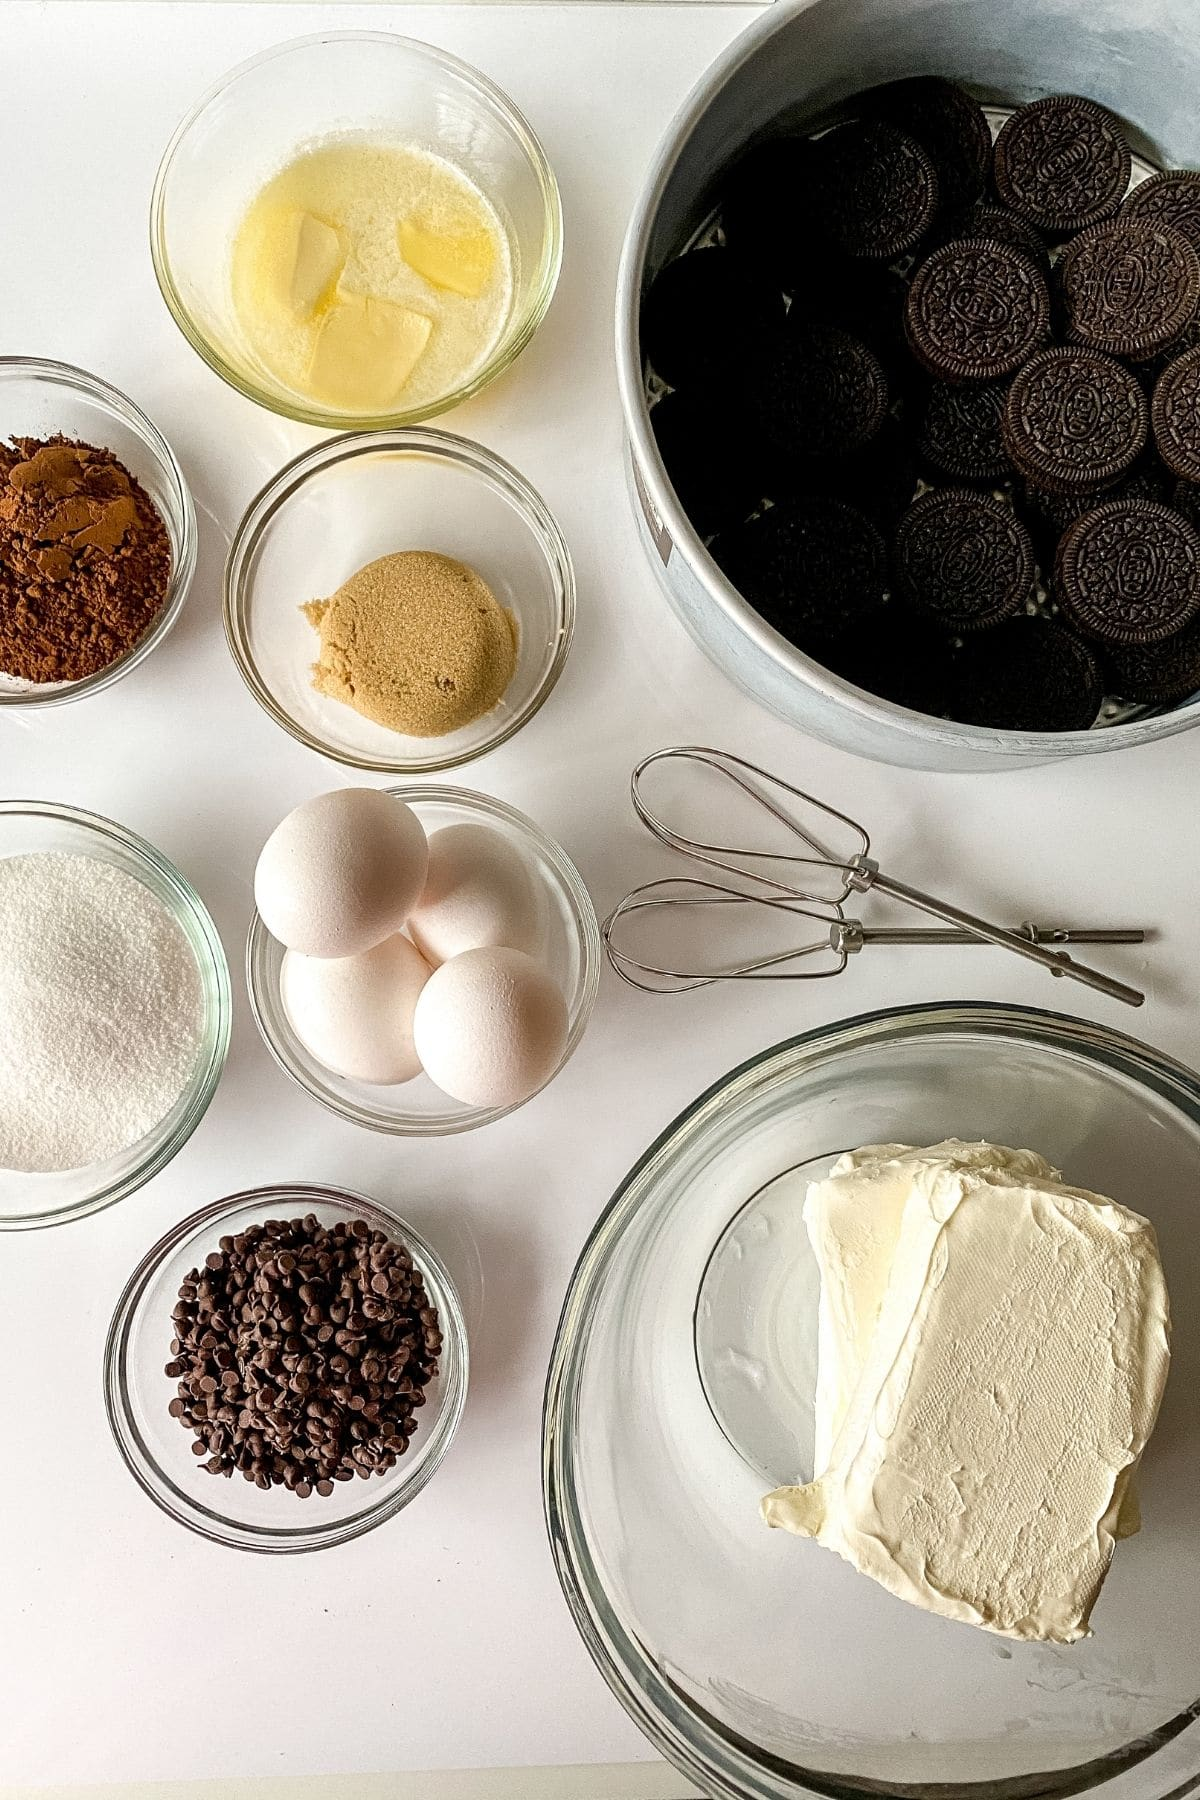 Chocolate cheesecake ingredients